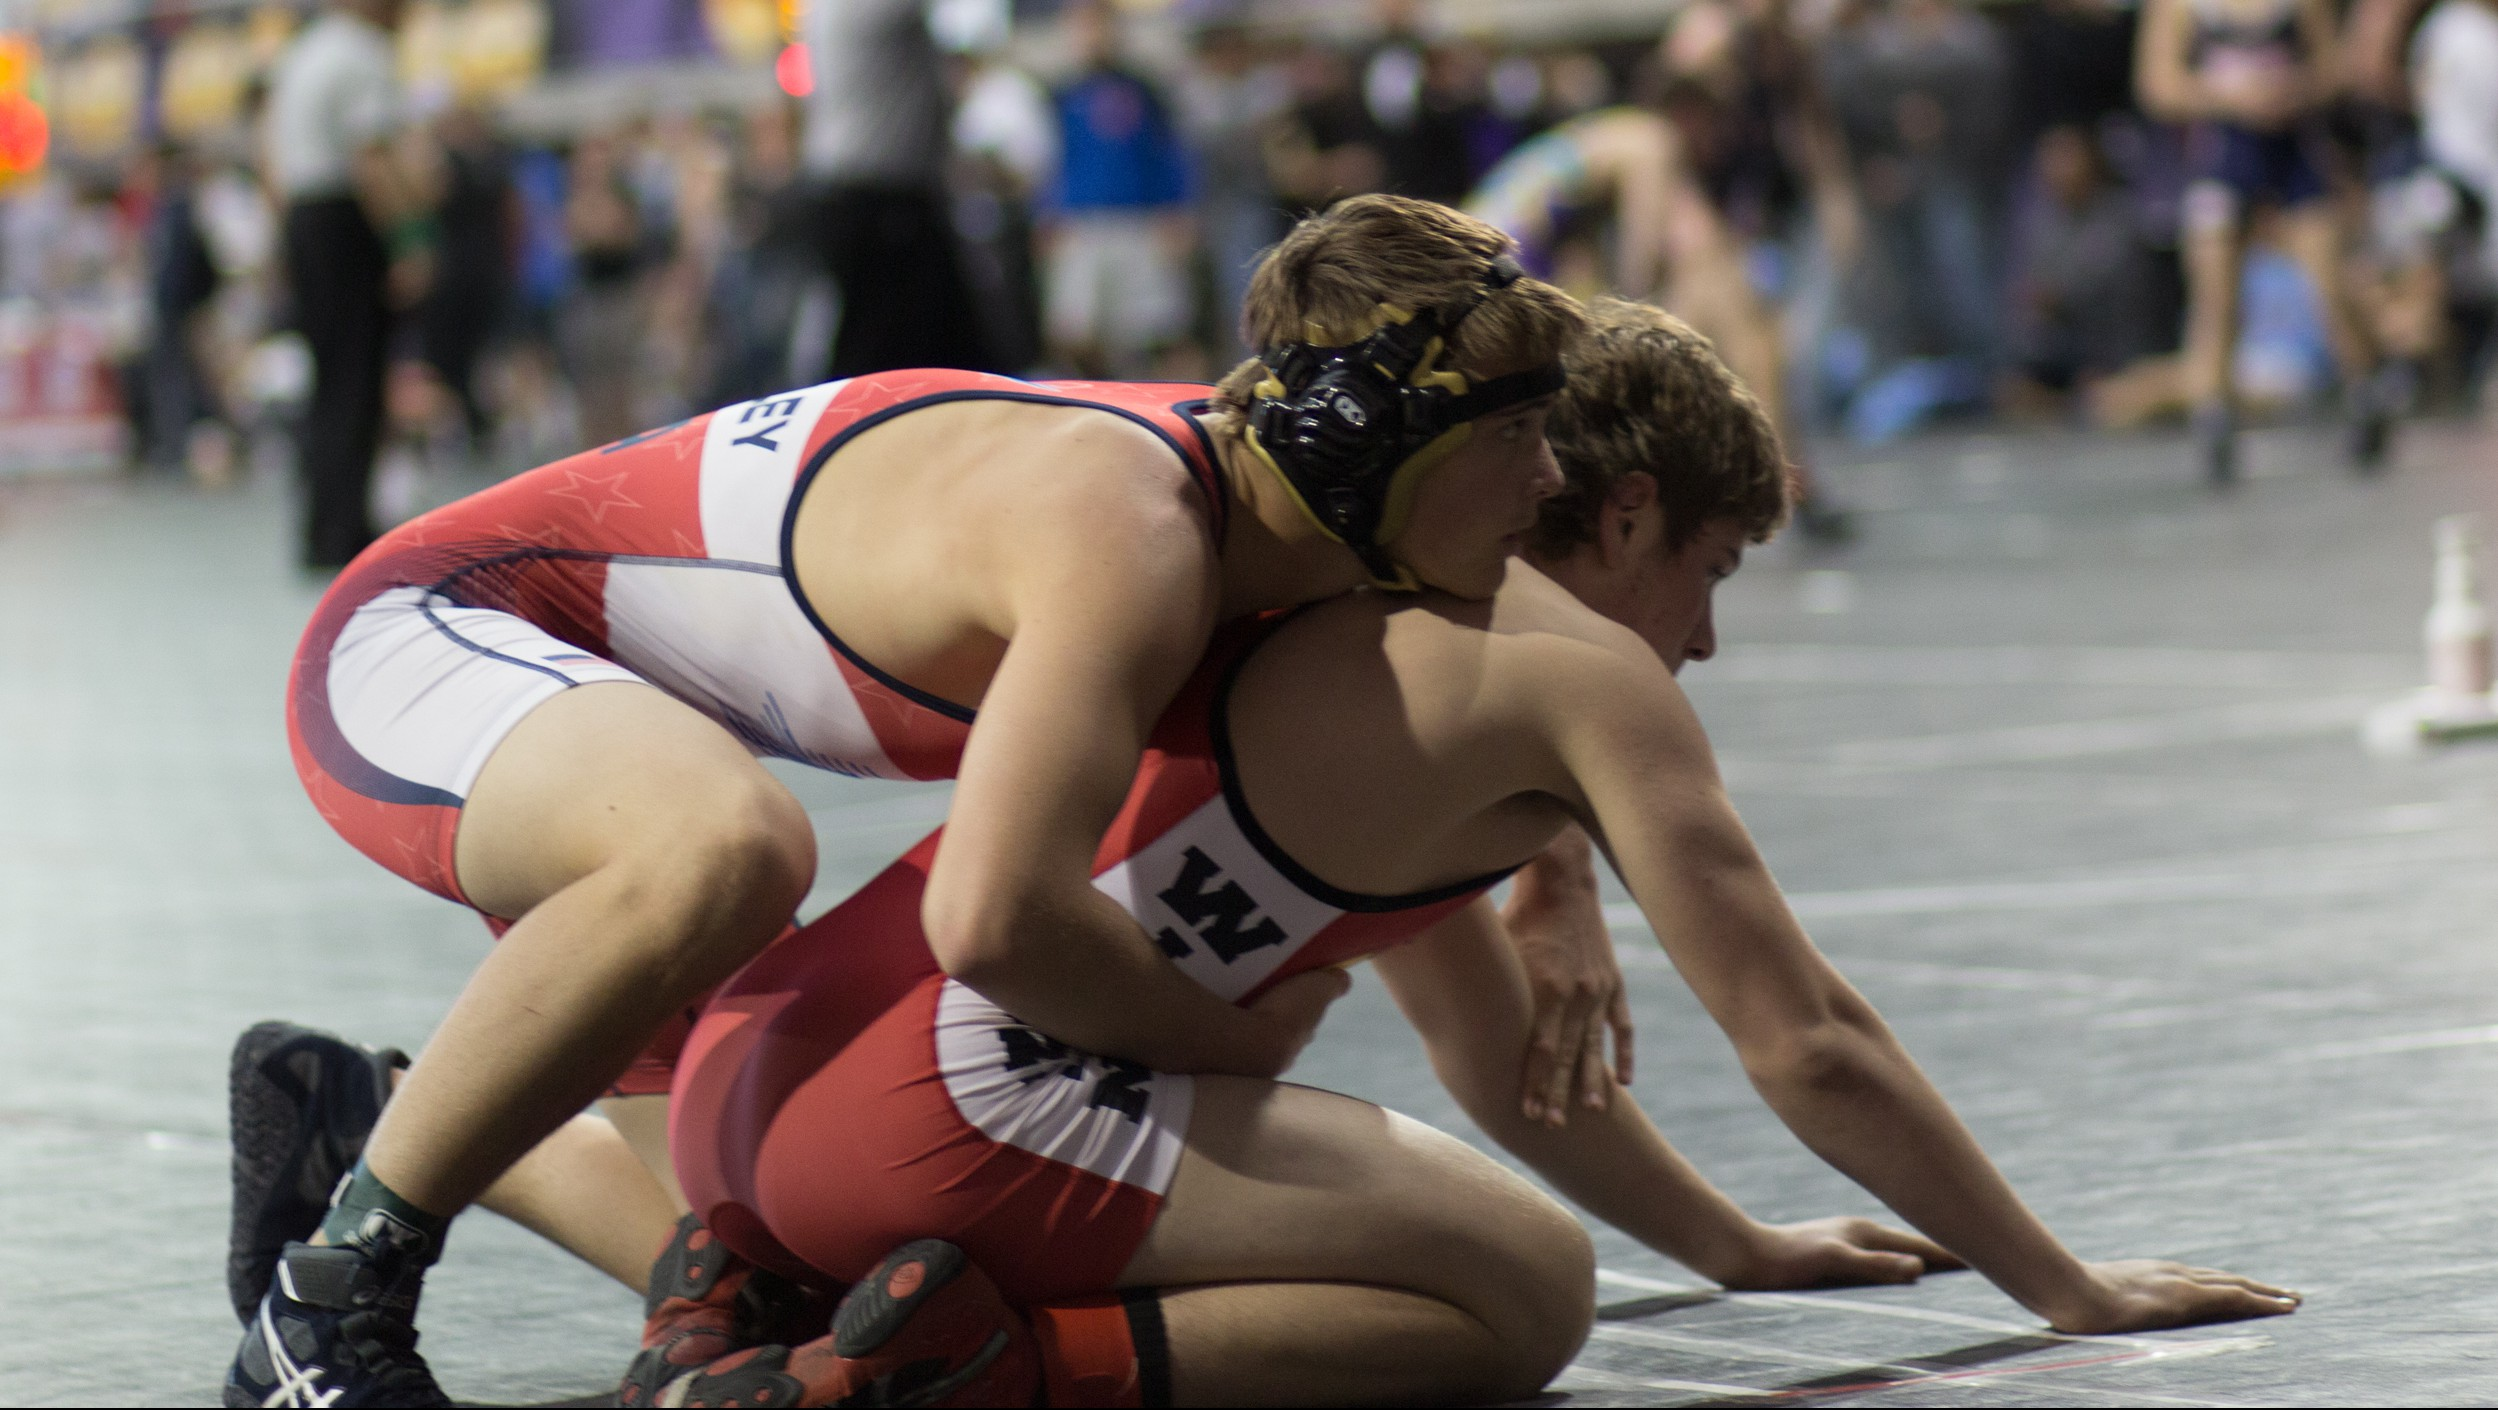 Zach McCauley has learned to manage is diabetes during a stellar wrestling career Photo: Tom McCauley